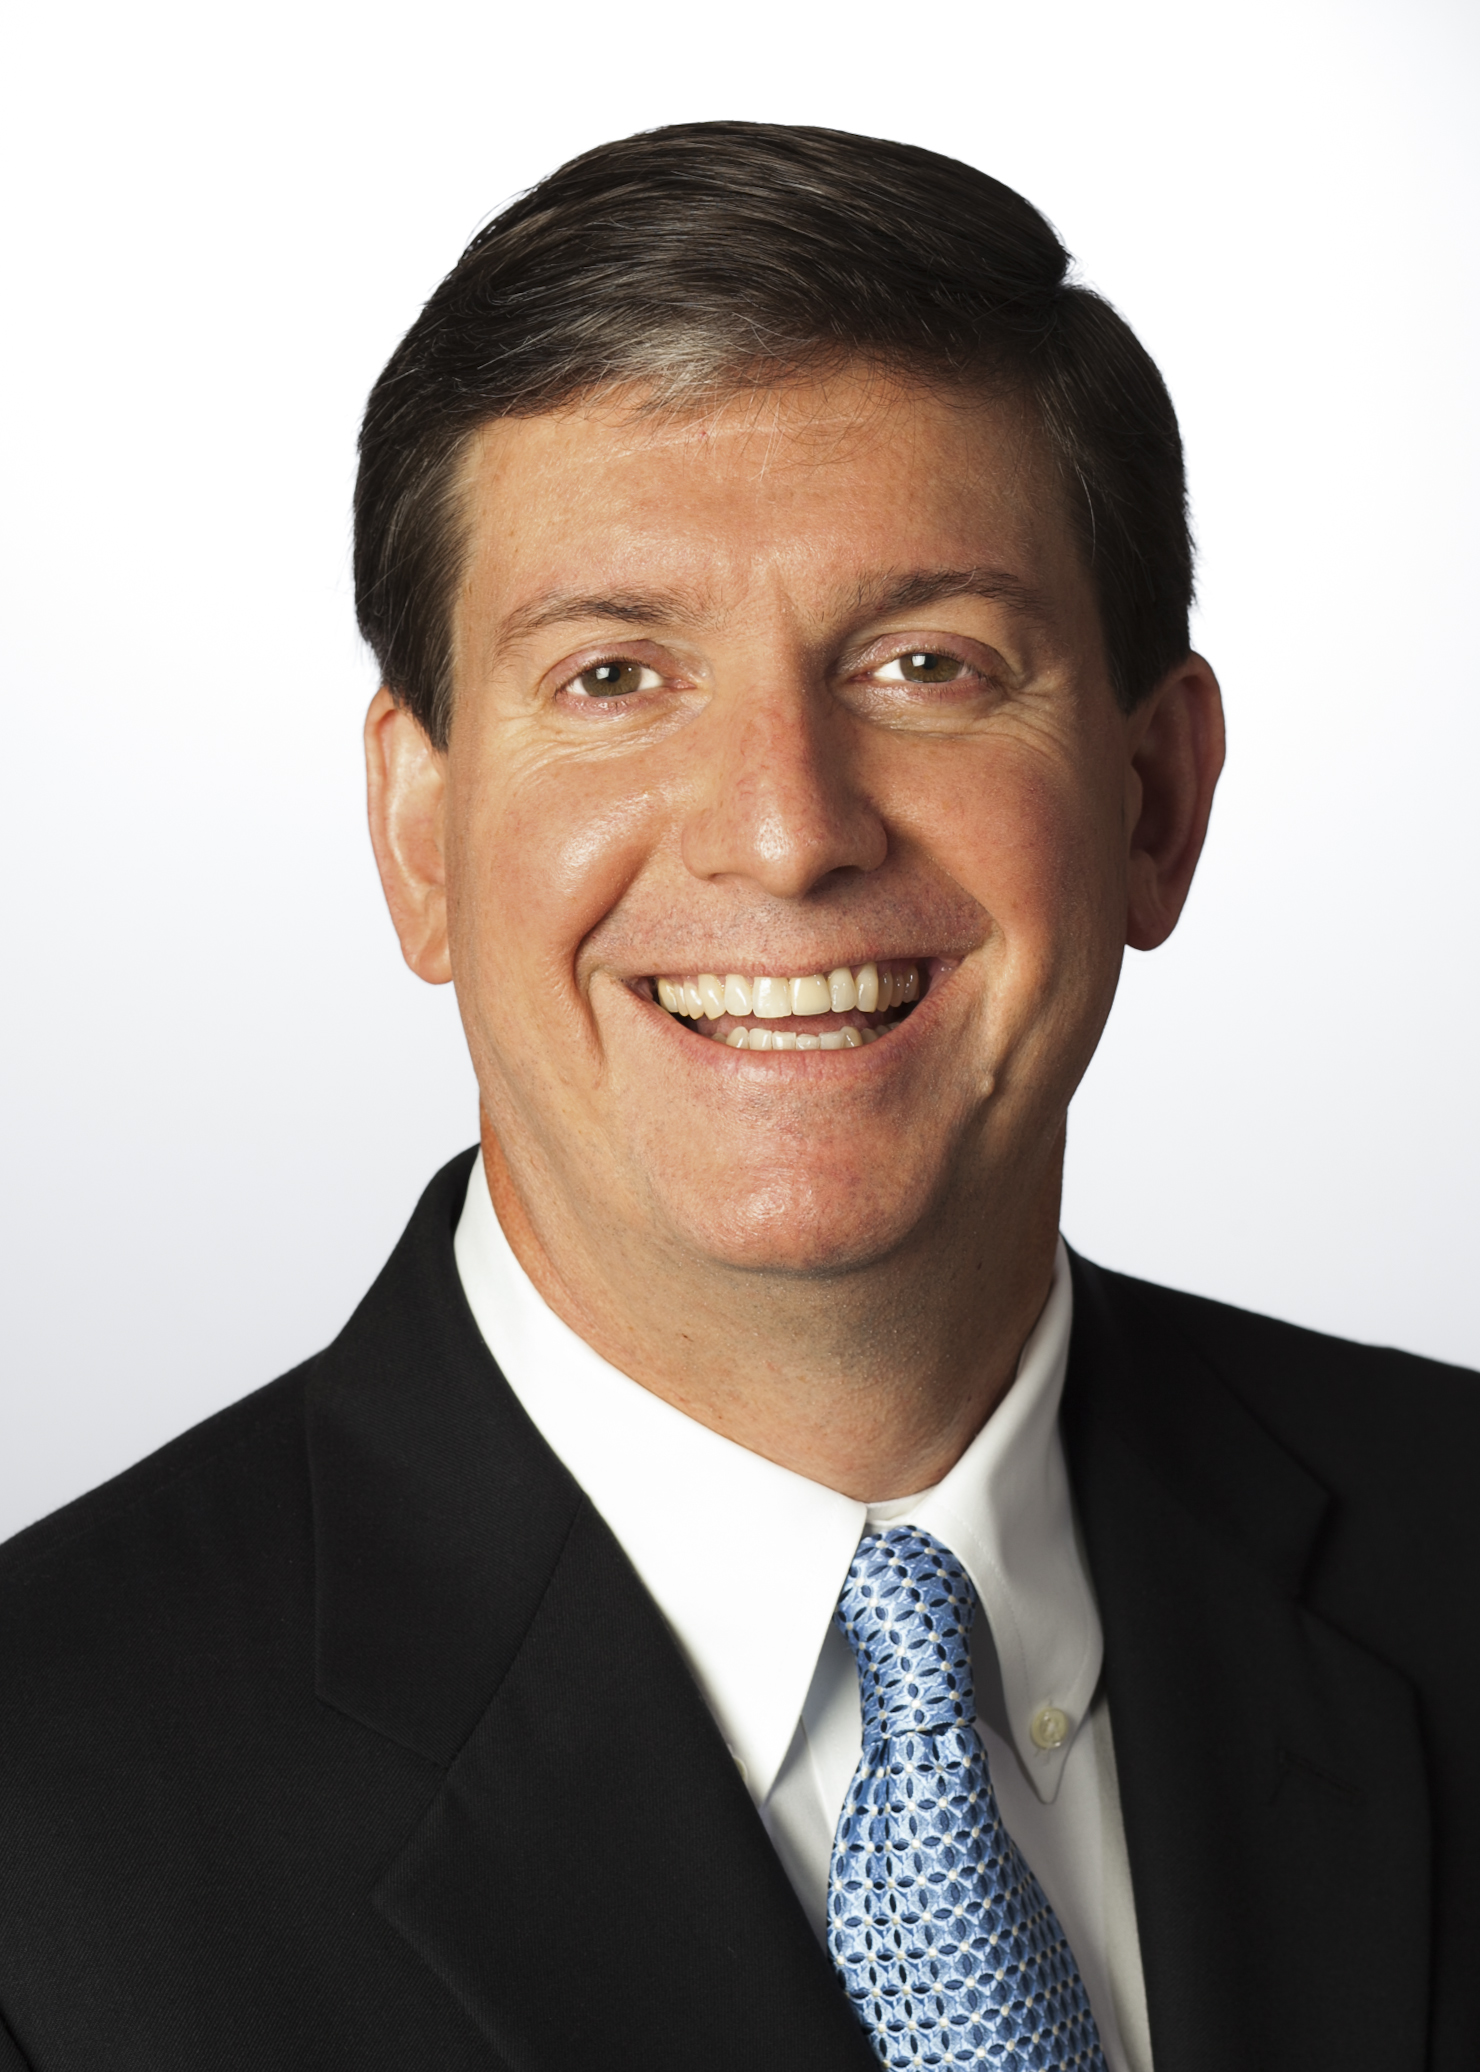 Jim David, financial advisor McLean VA